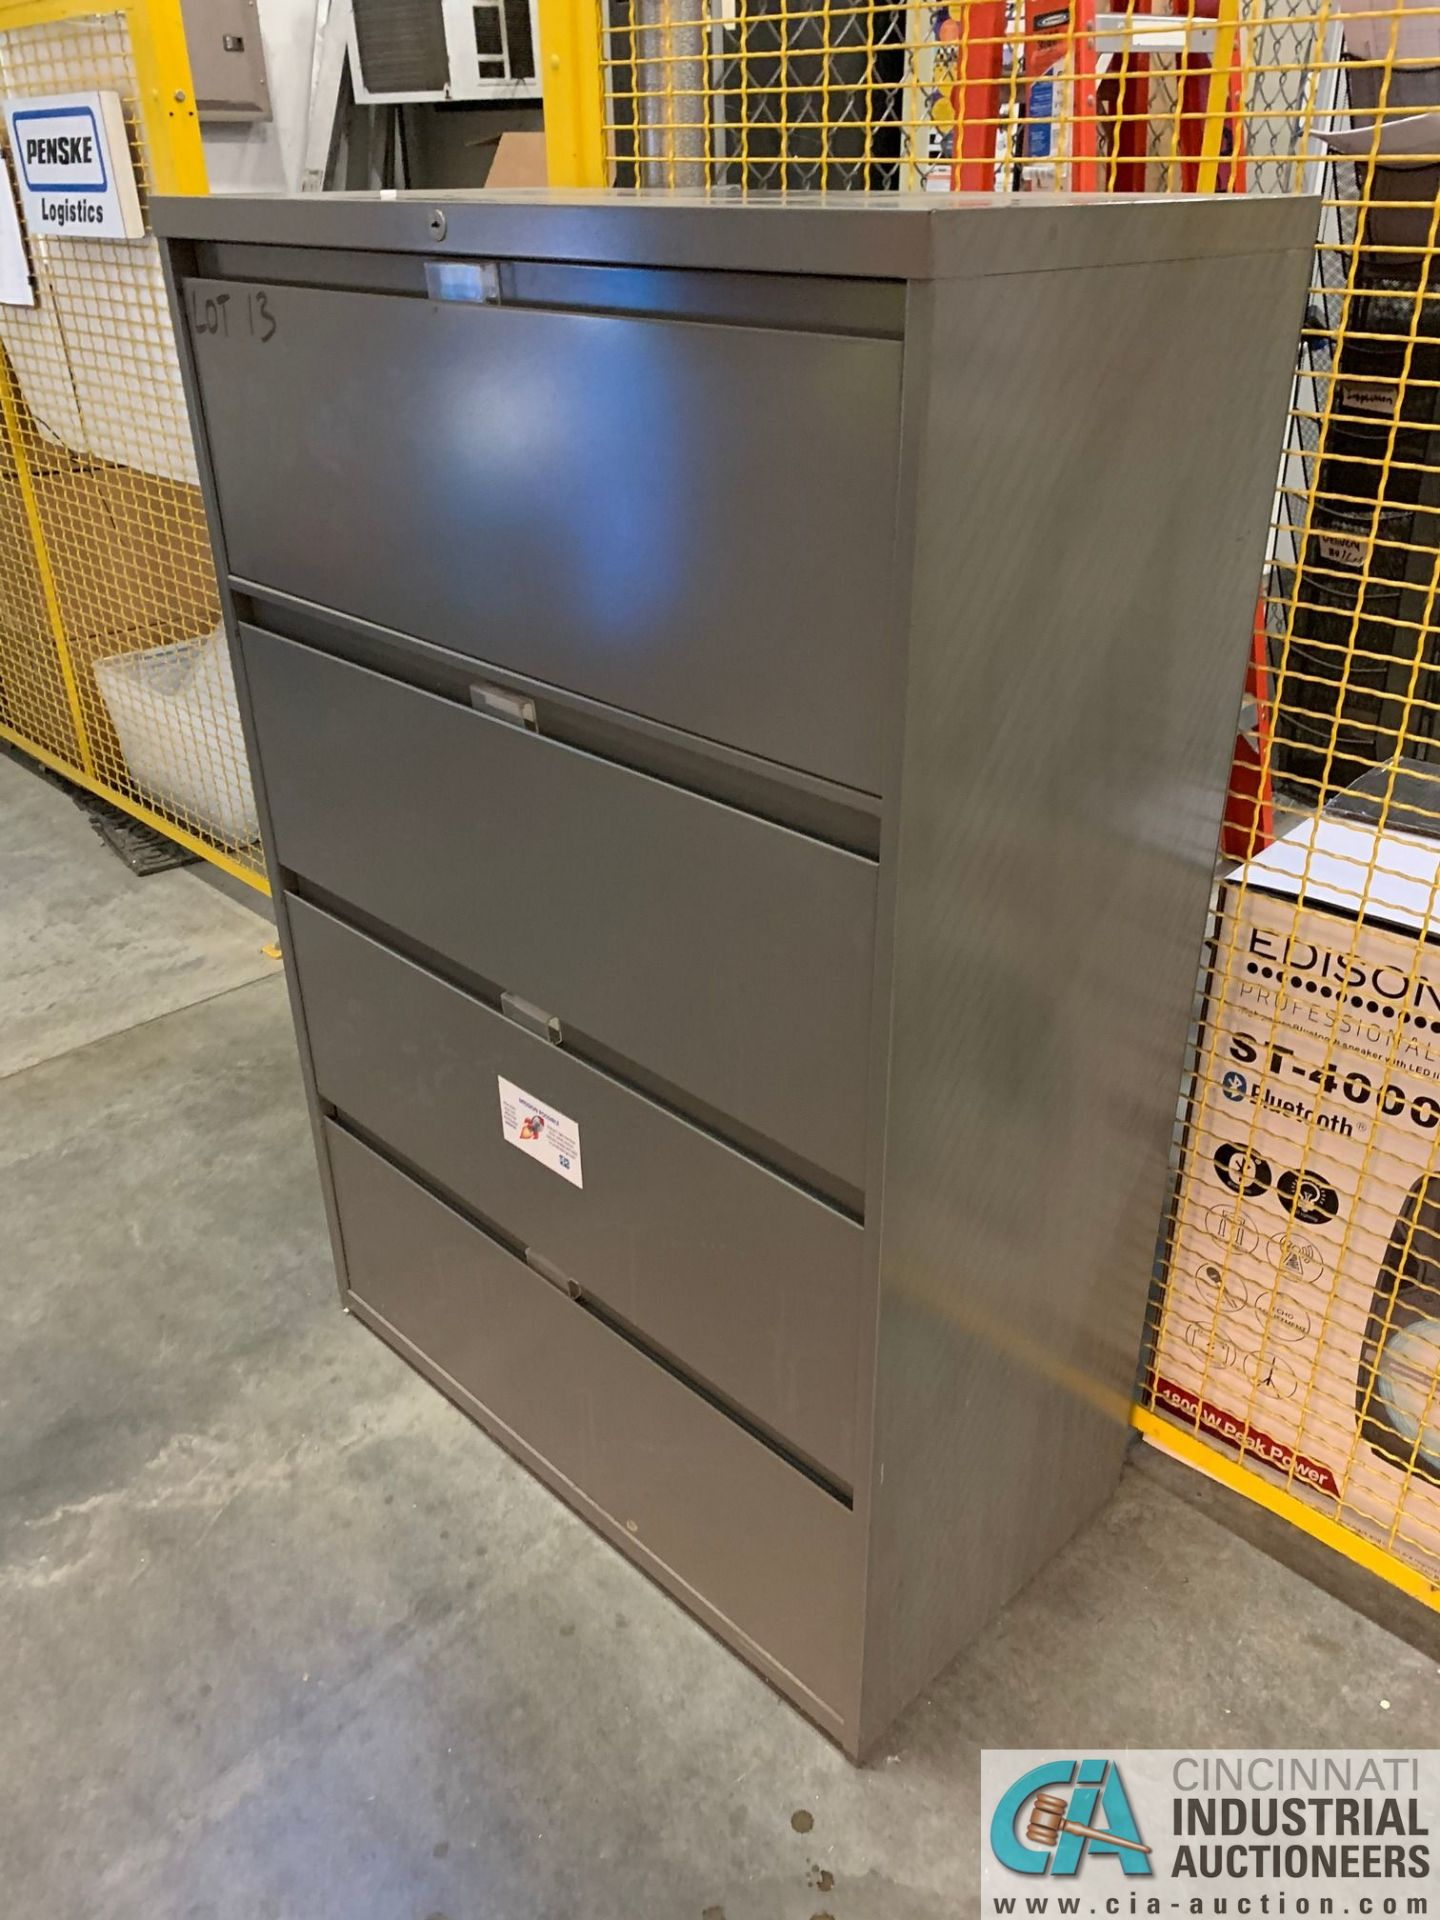 FOUR-DRAWER STEELCASE LATERAL FILE CABINETS (NO CONTENTS) (5400 OAKLEY INDUSTRIAL BLVD., FAIRBURN, - Image 4 of 9